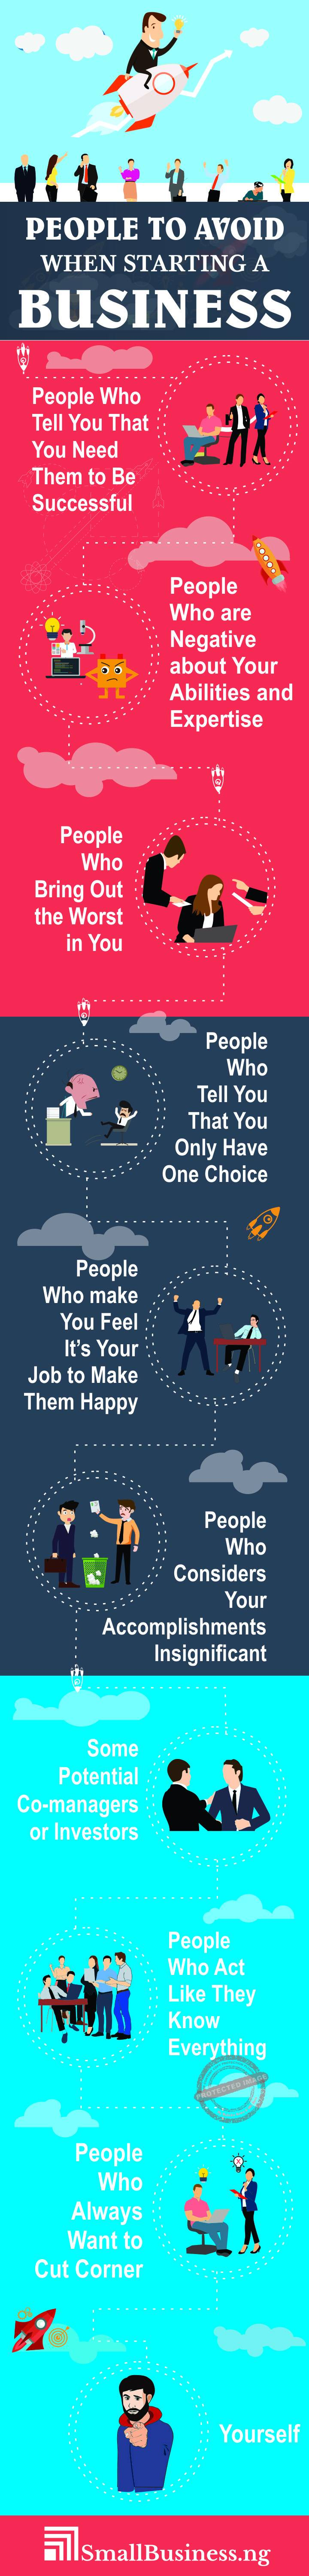 People To Avoid When Starting A Business infographic